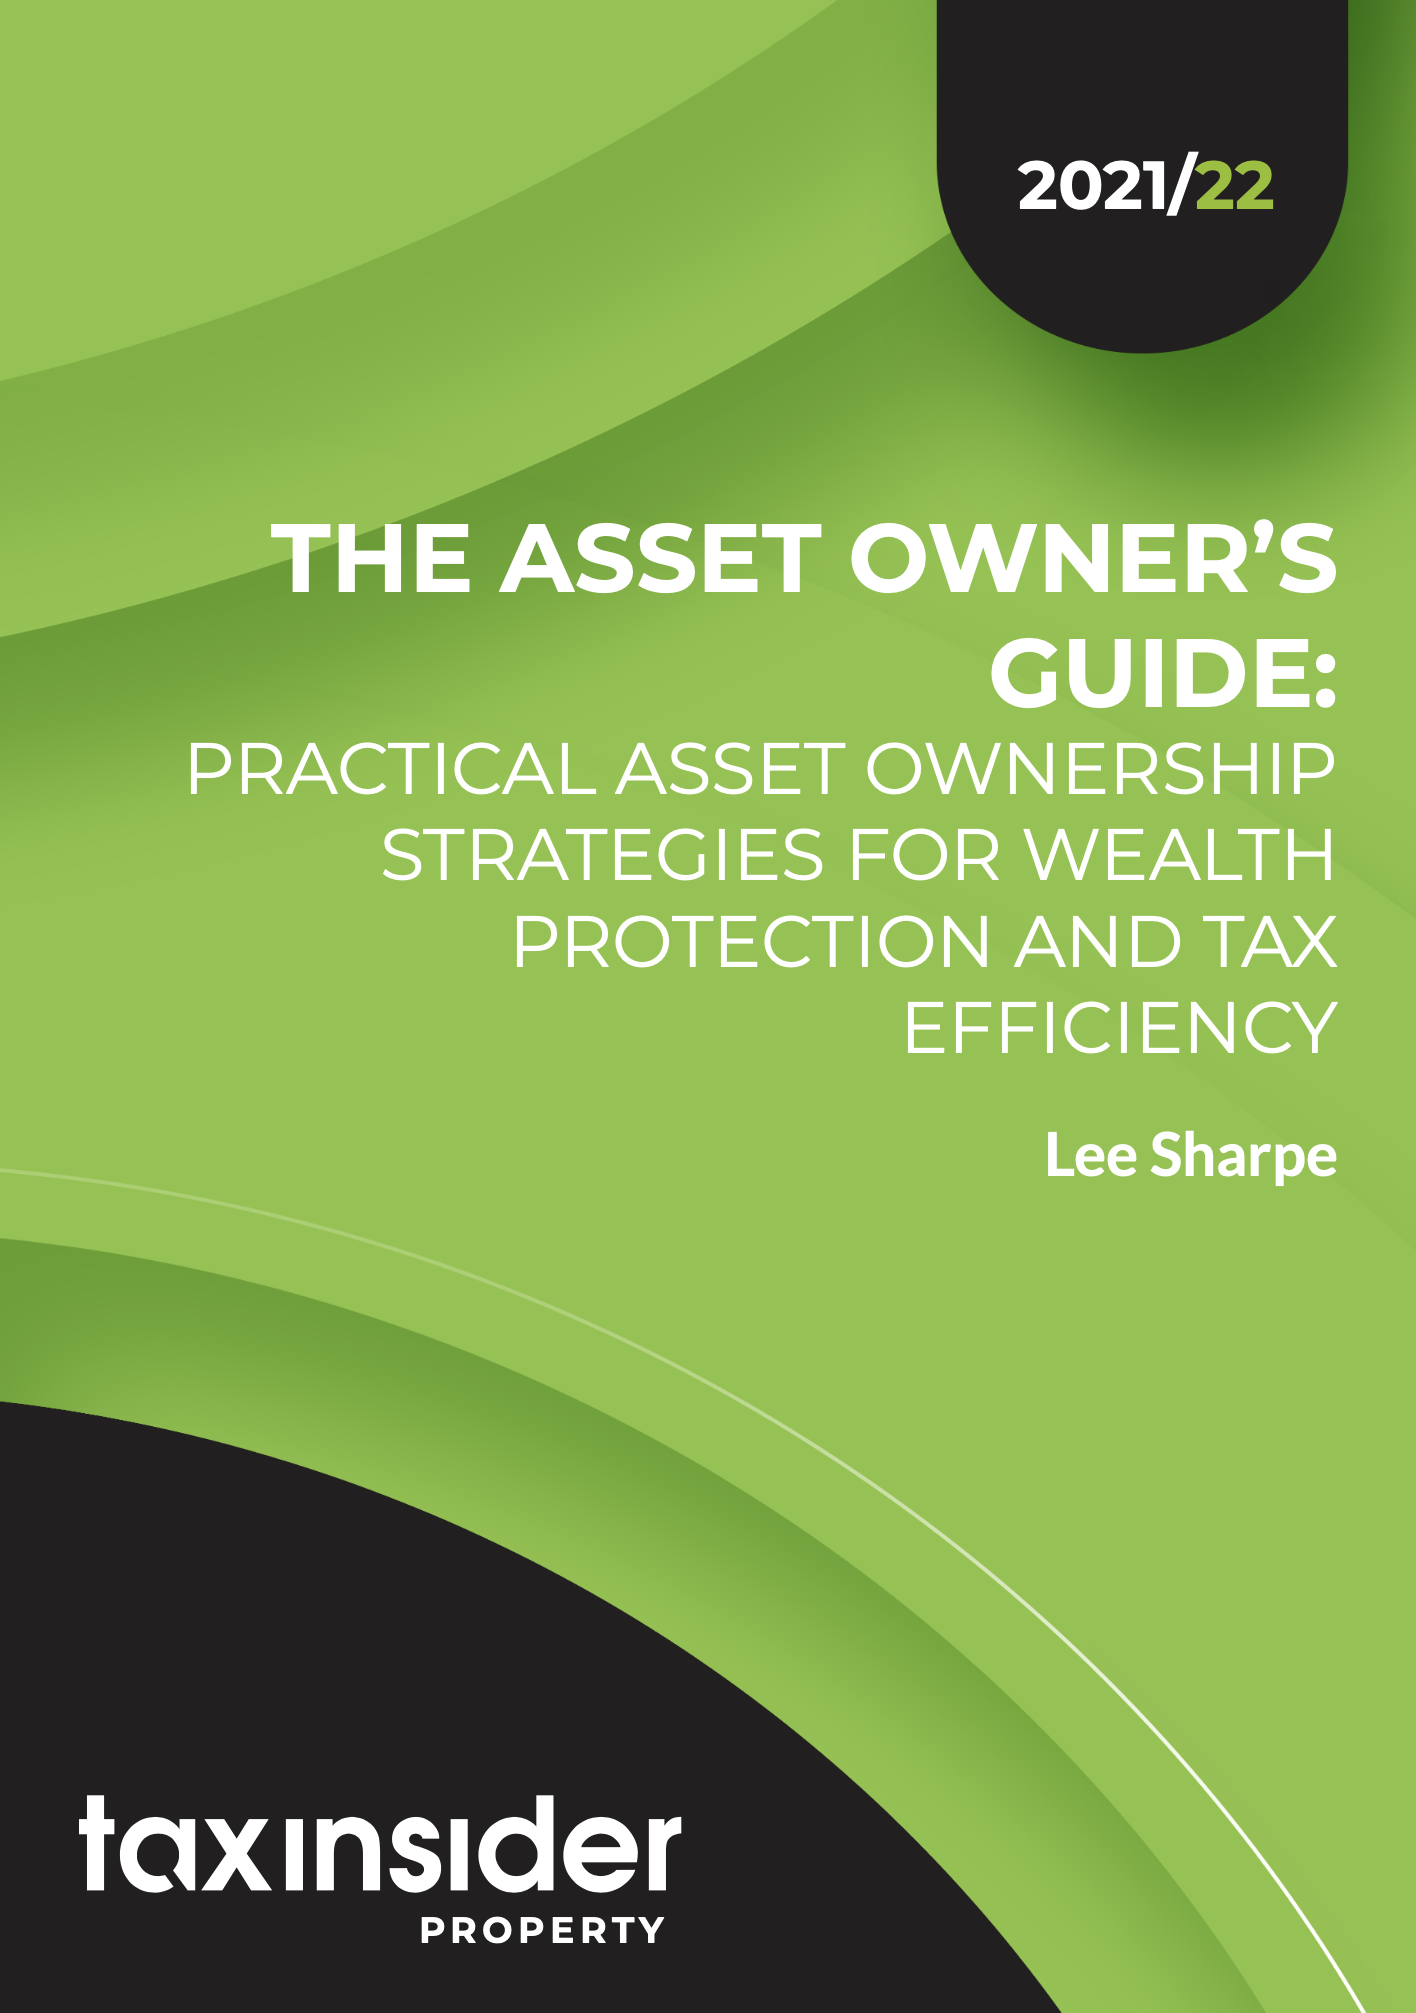 the asset owner's guide tax report